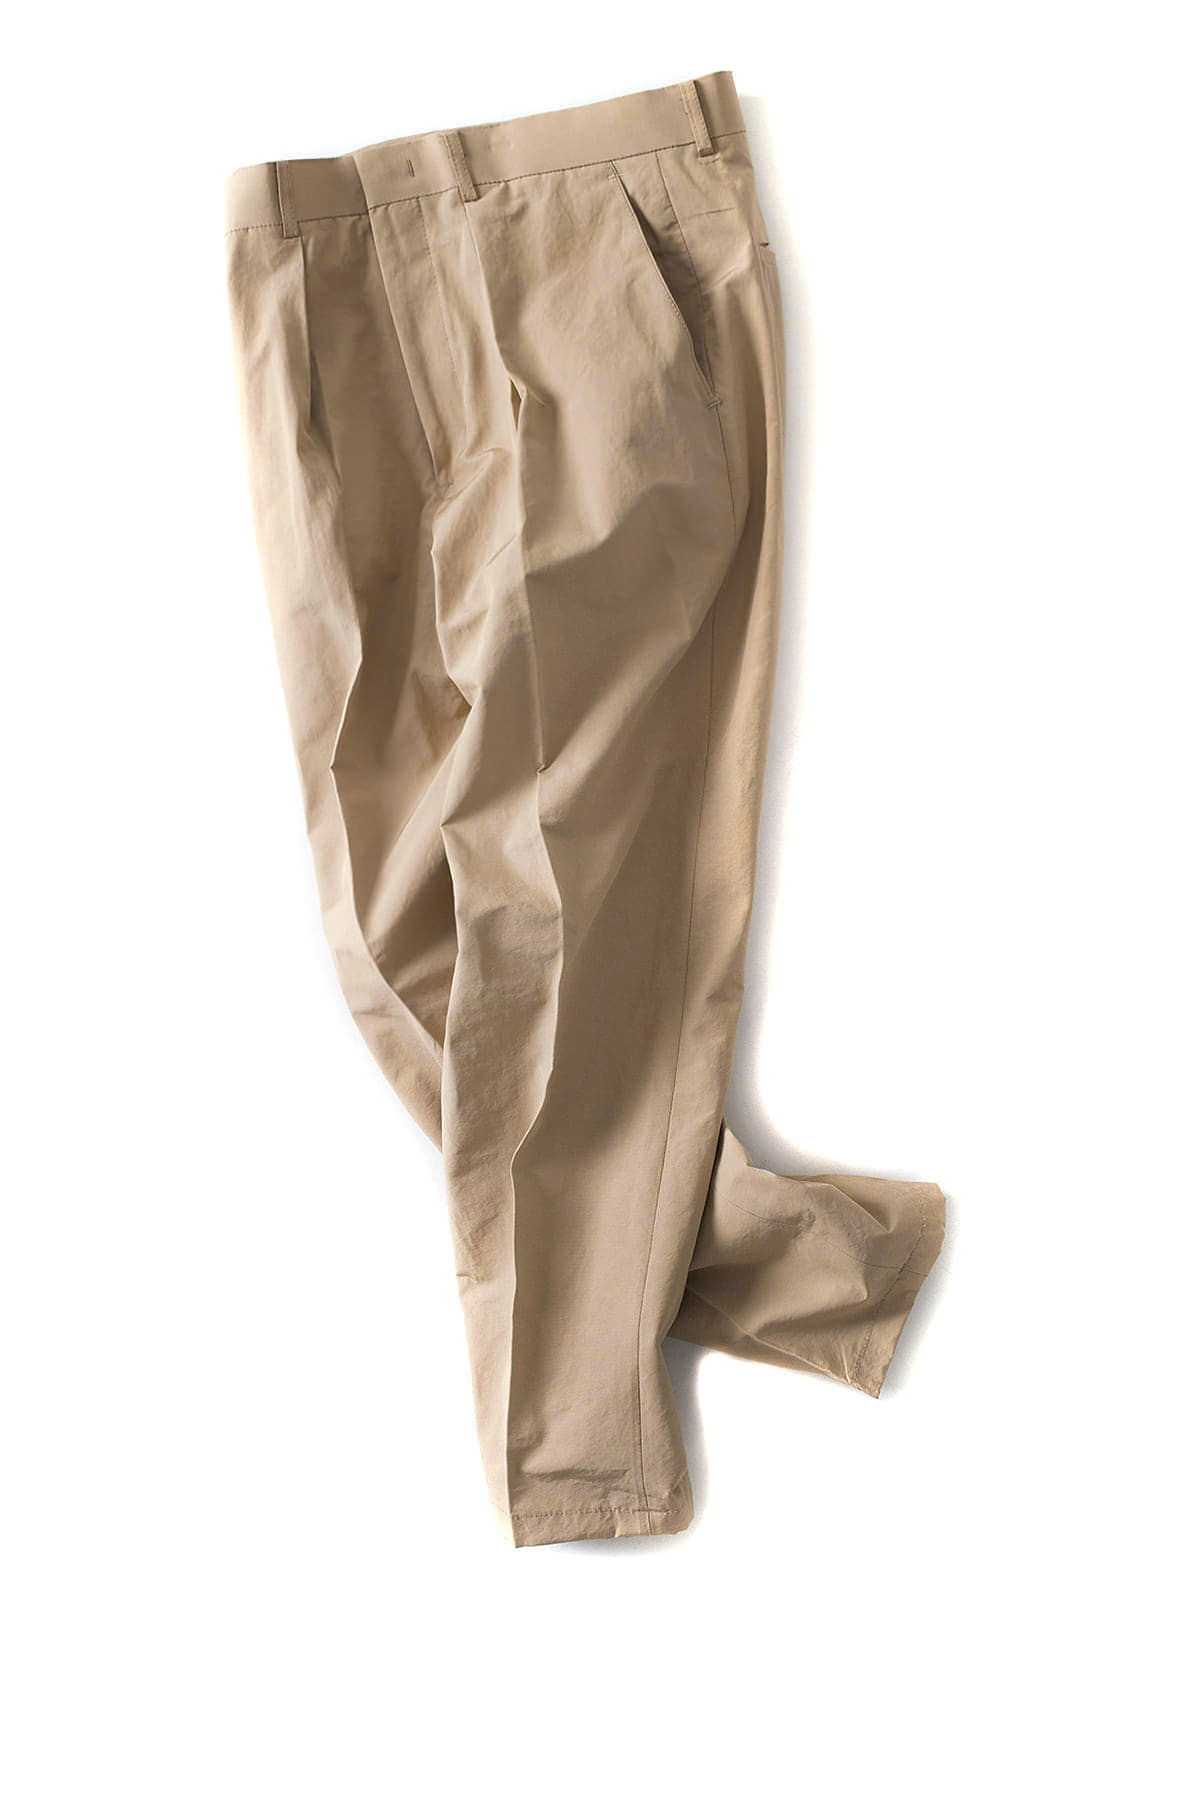 BIRTHDAYSUIT : Weekend Pants (Sand Beige)